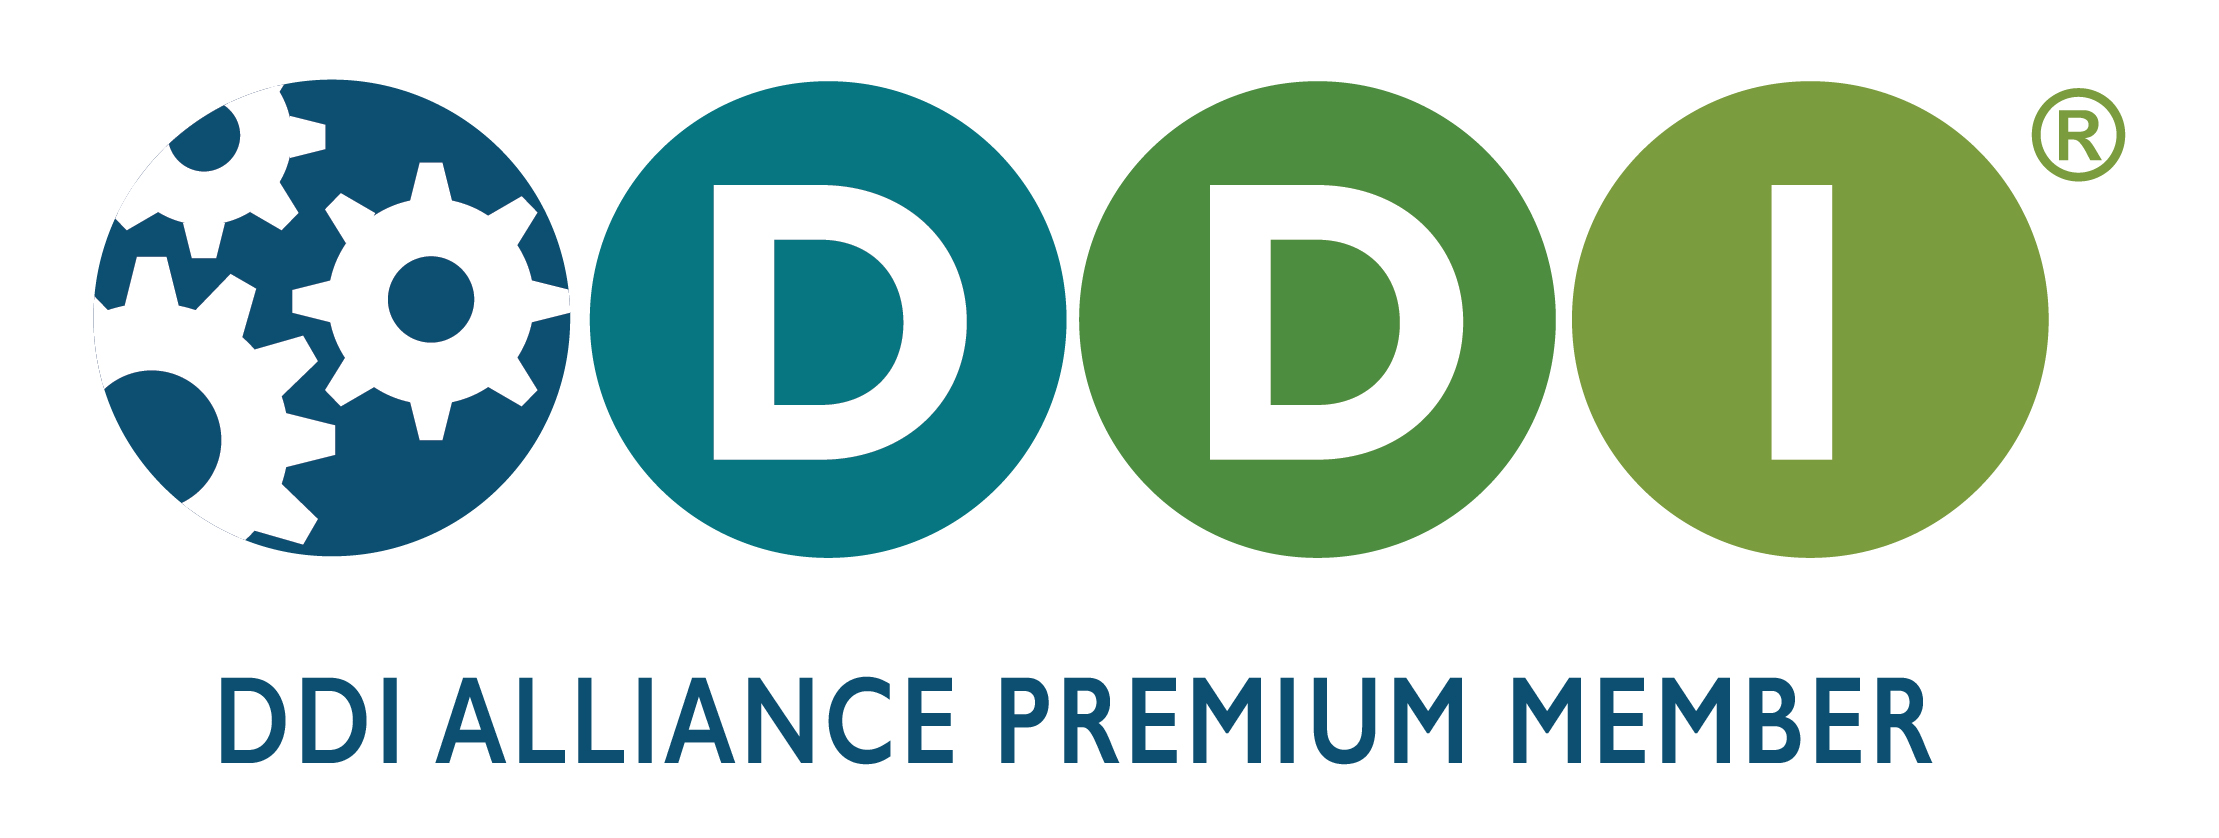 DDI Alliance logo